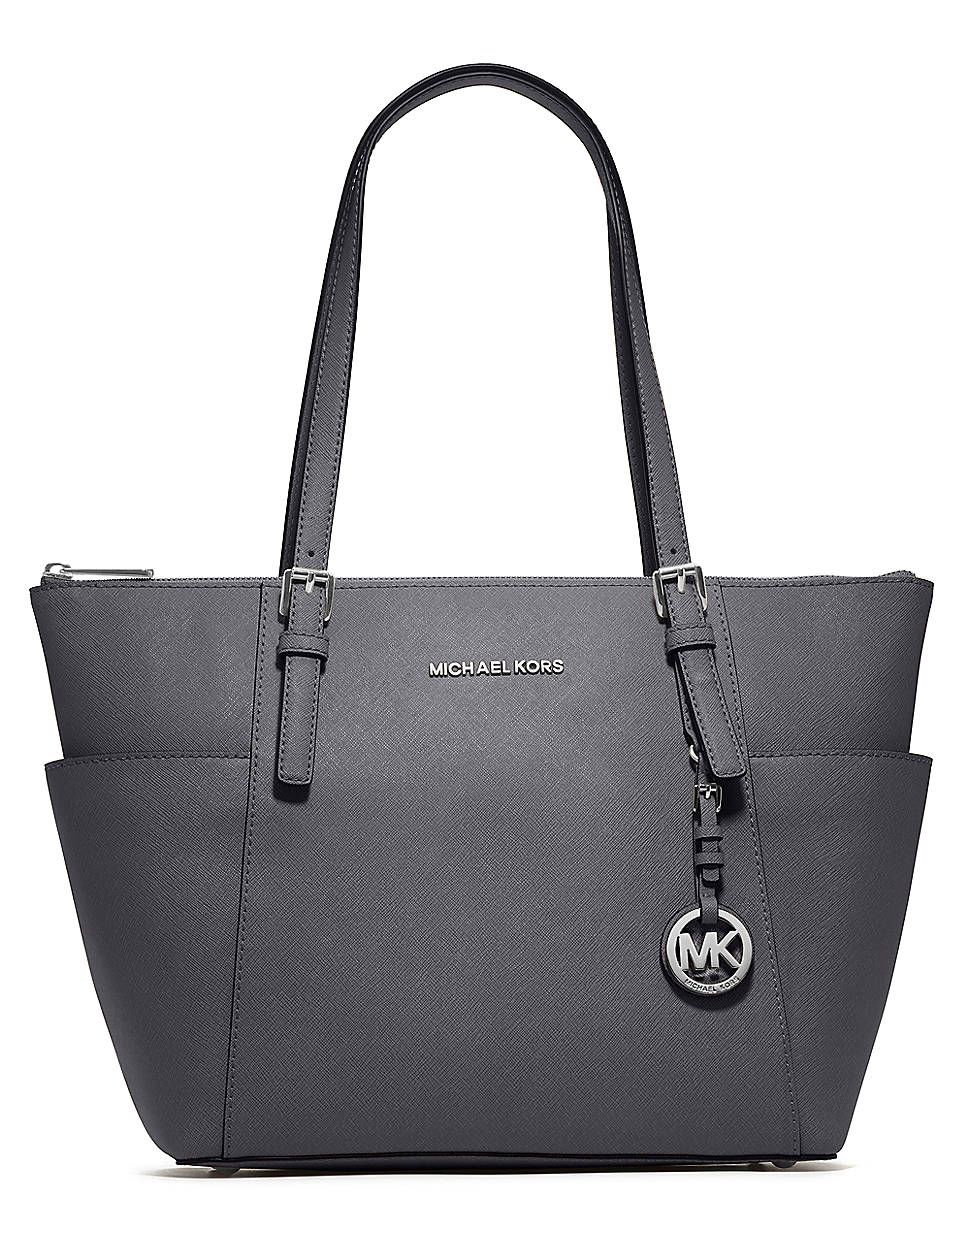 44d25c6e1fac Michael Michael Kors Jet Set Leather East/West Tote Bag DARK SLATE